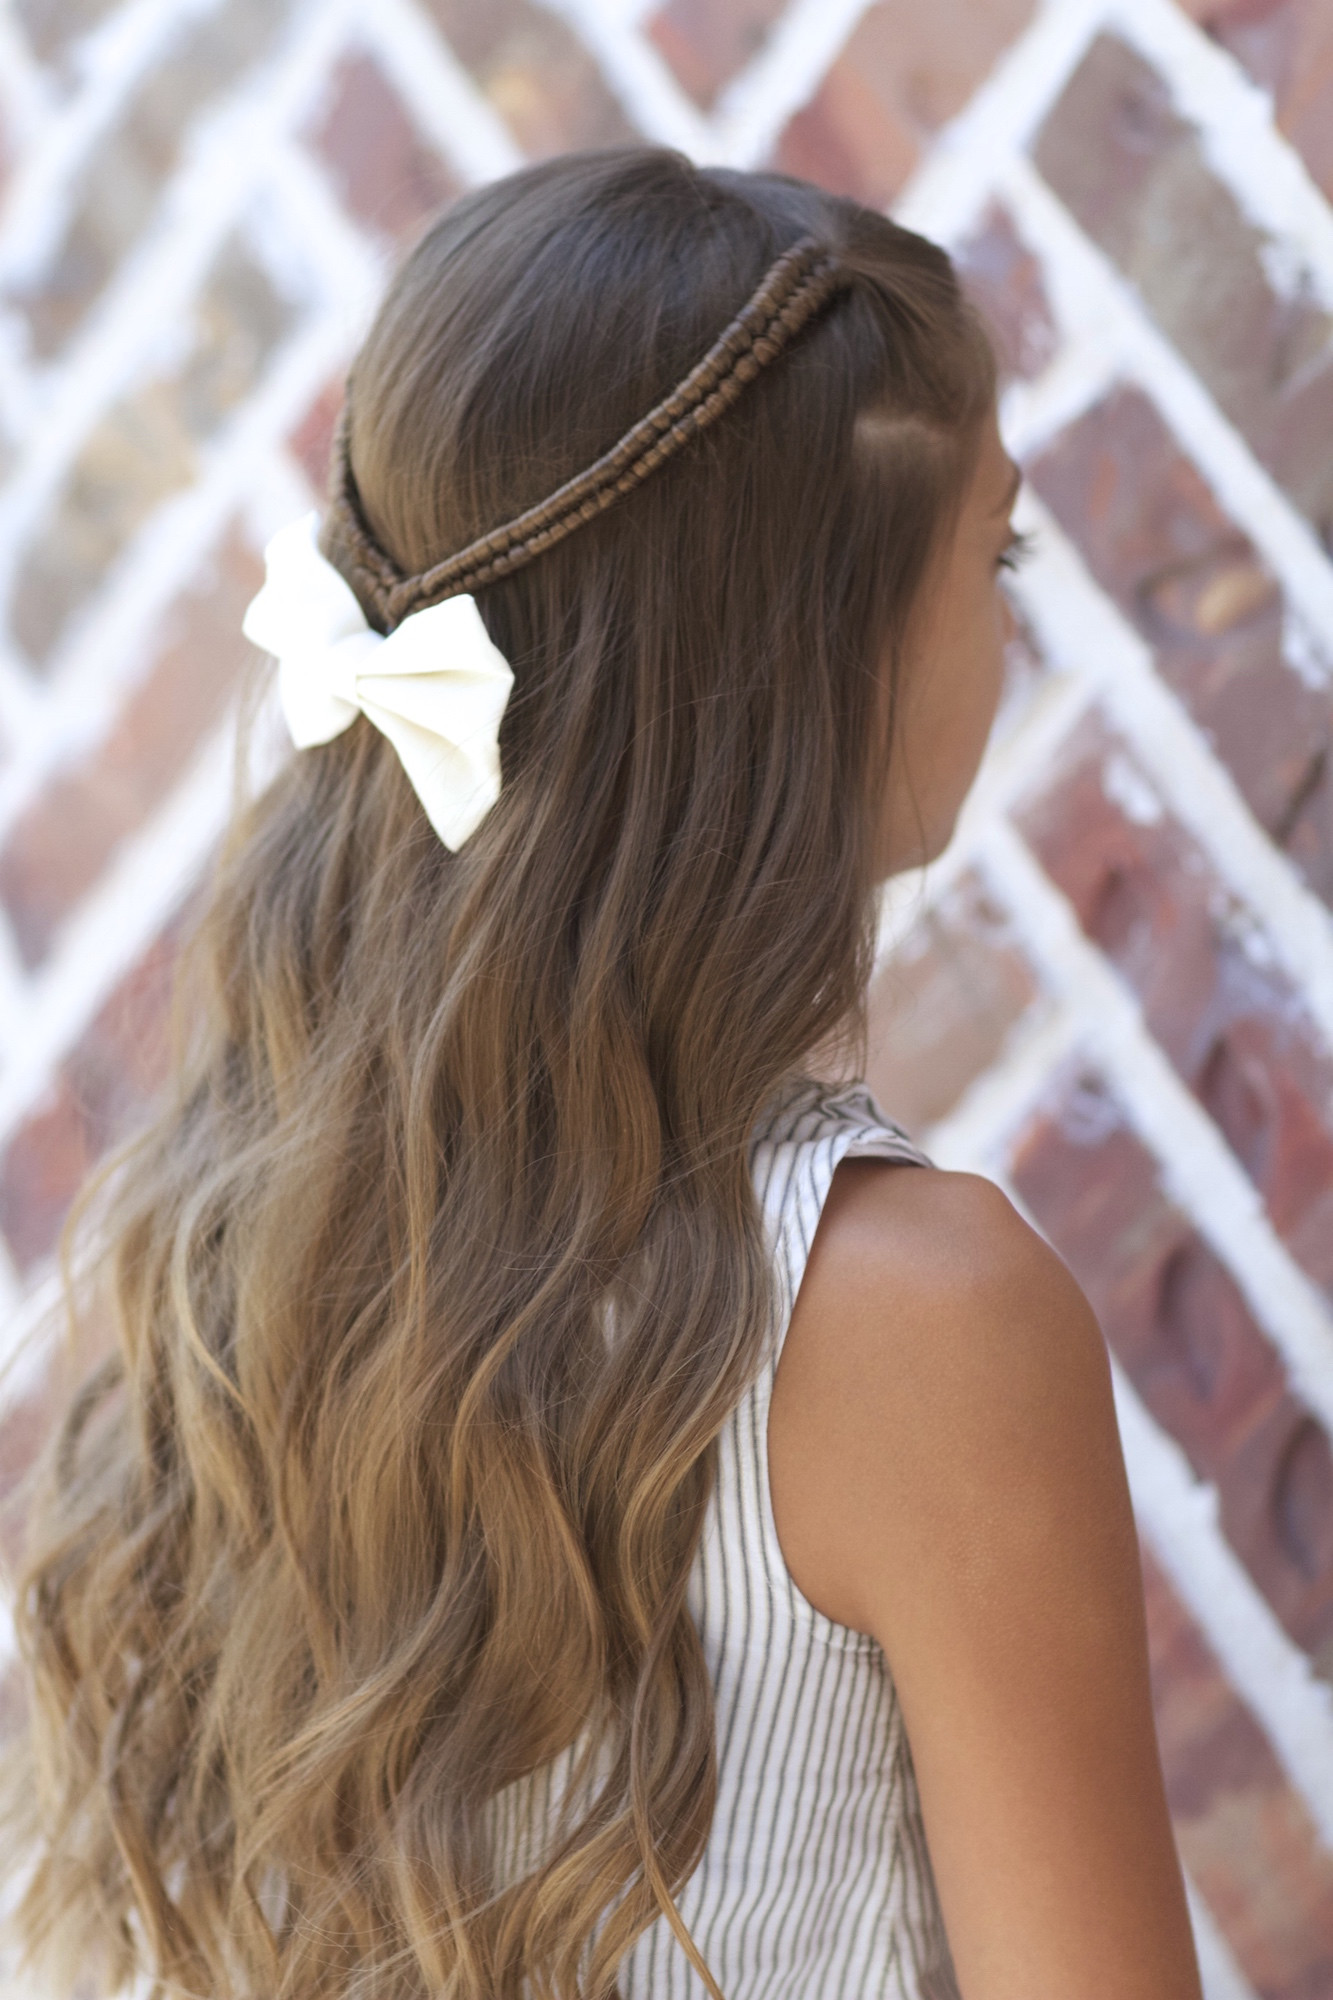 Best ideas about School Girls Hairstyle . Save or Pin Infinity Braid Tieback Back to School Hairstyles Now.